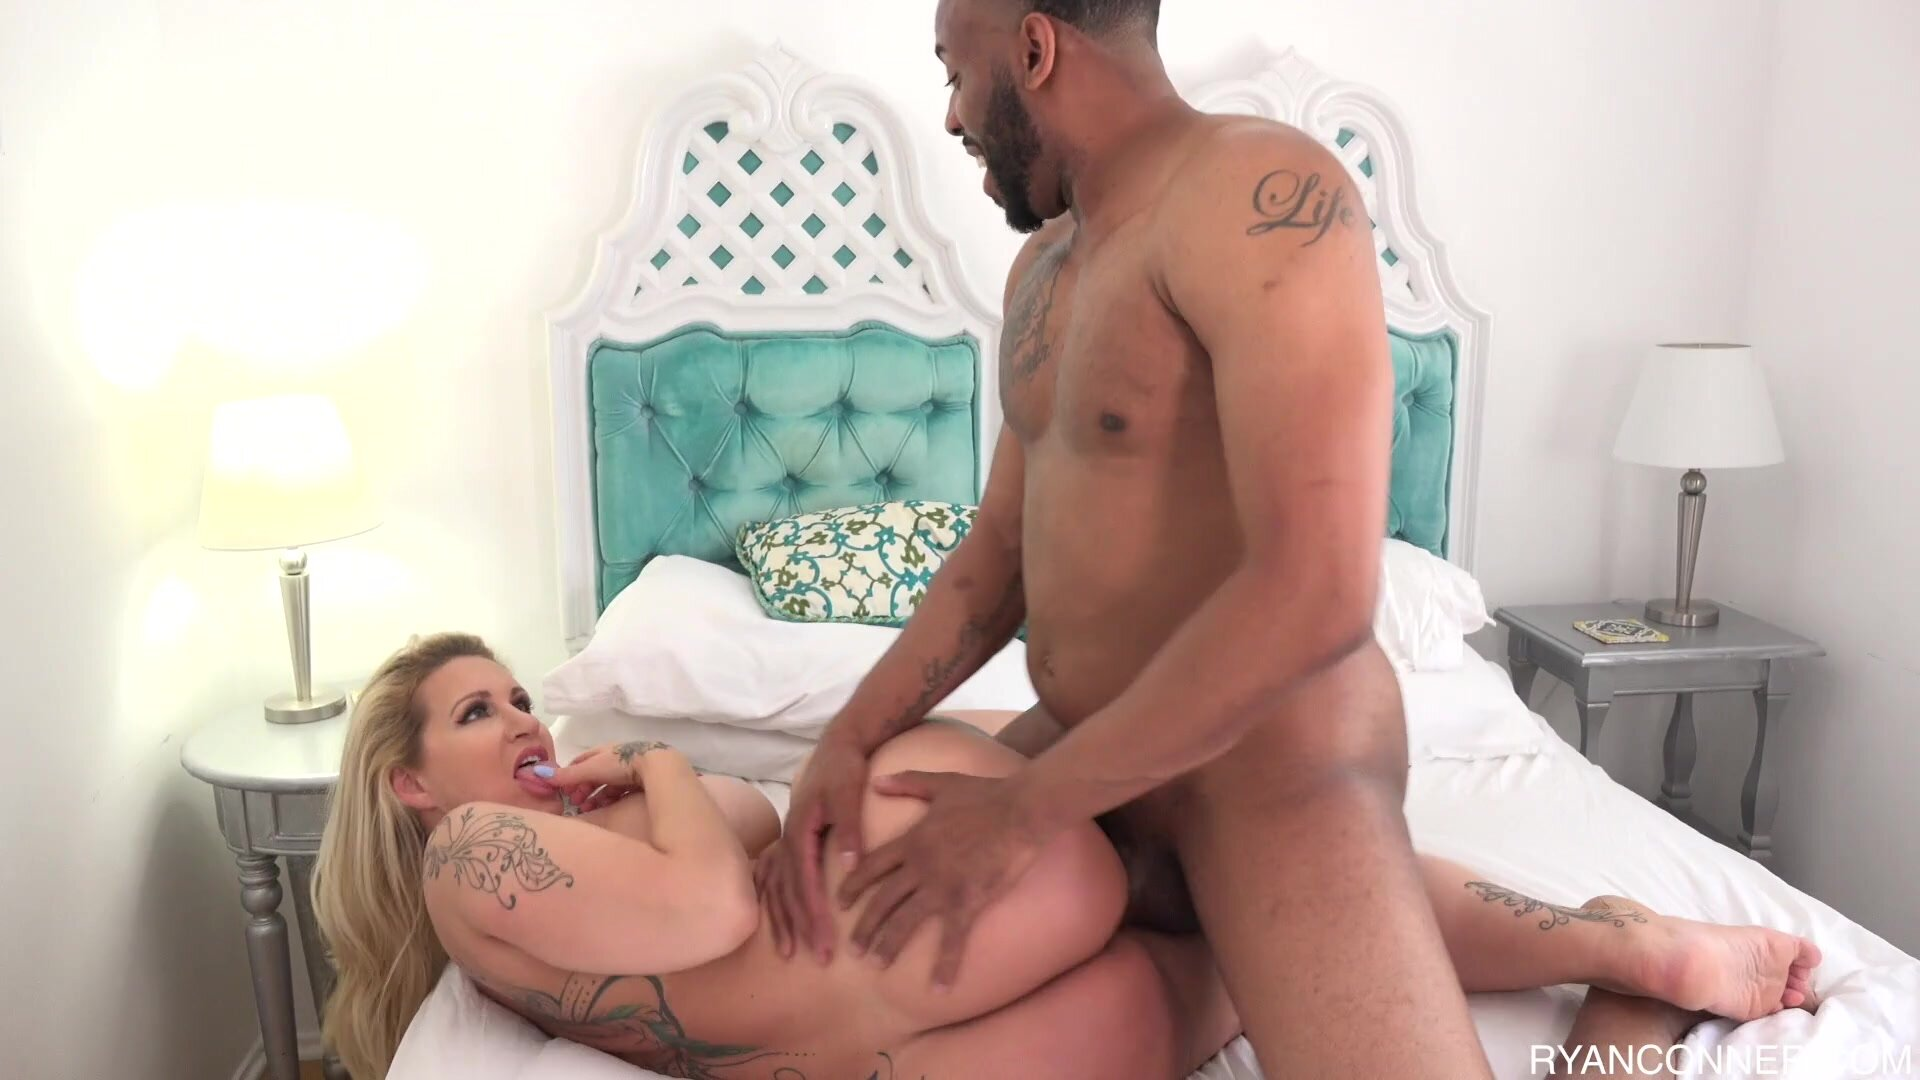 Round Girl Takes Black Cock In Ass - Ryan Conner